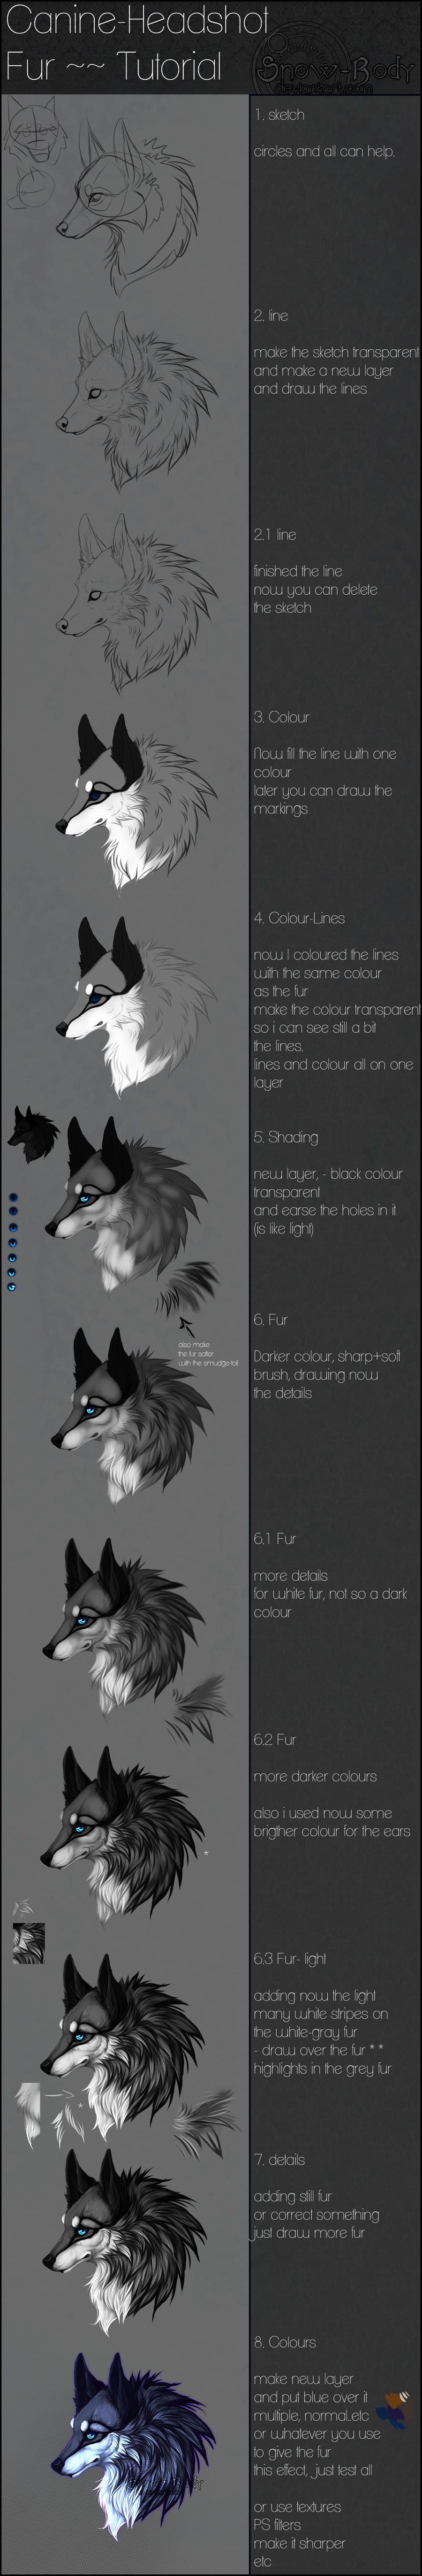 Snow-Body's: Fur-Tutorial by Snow-Body